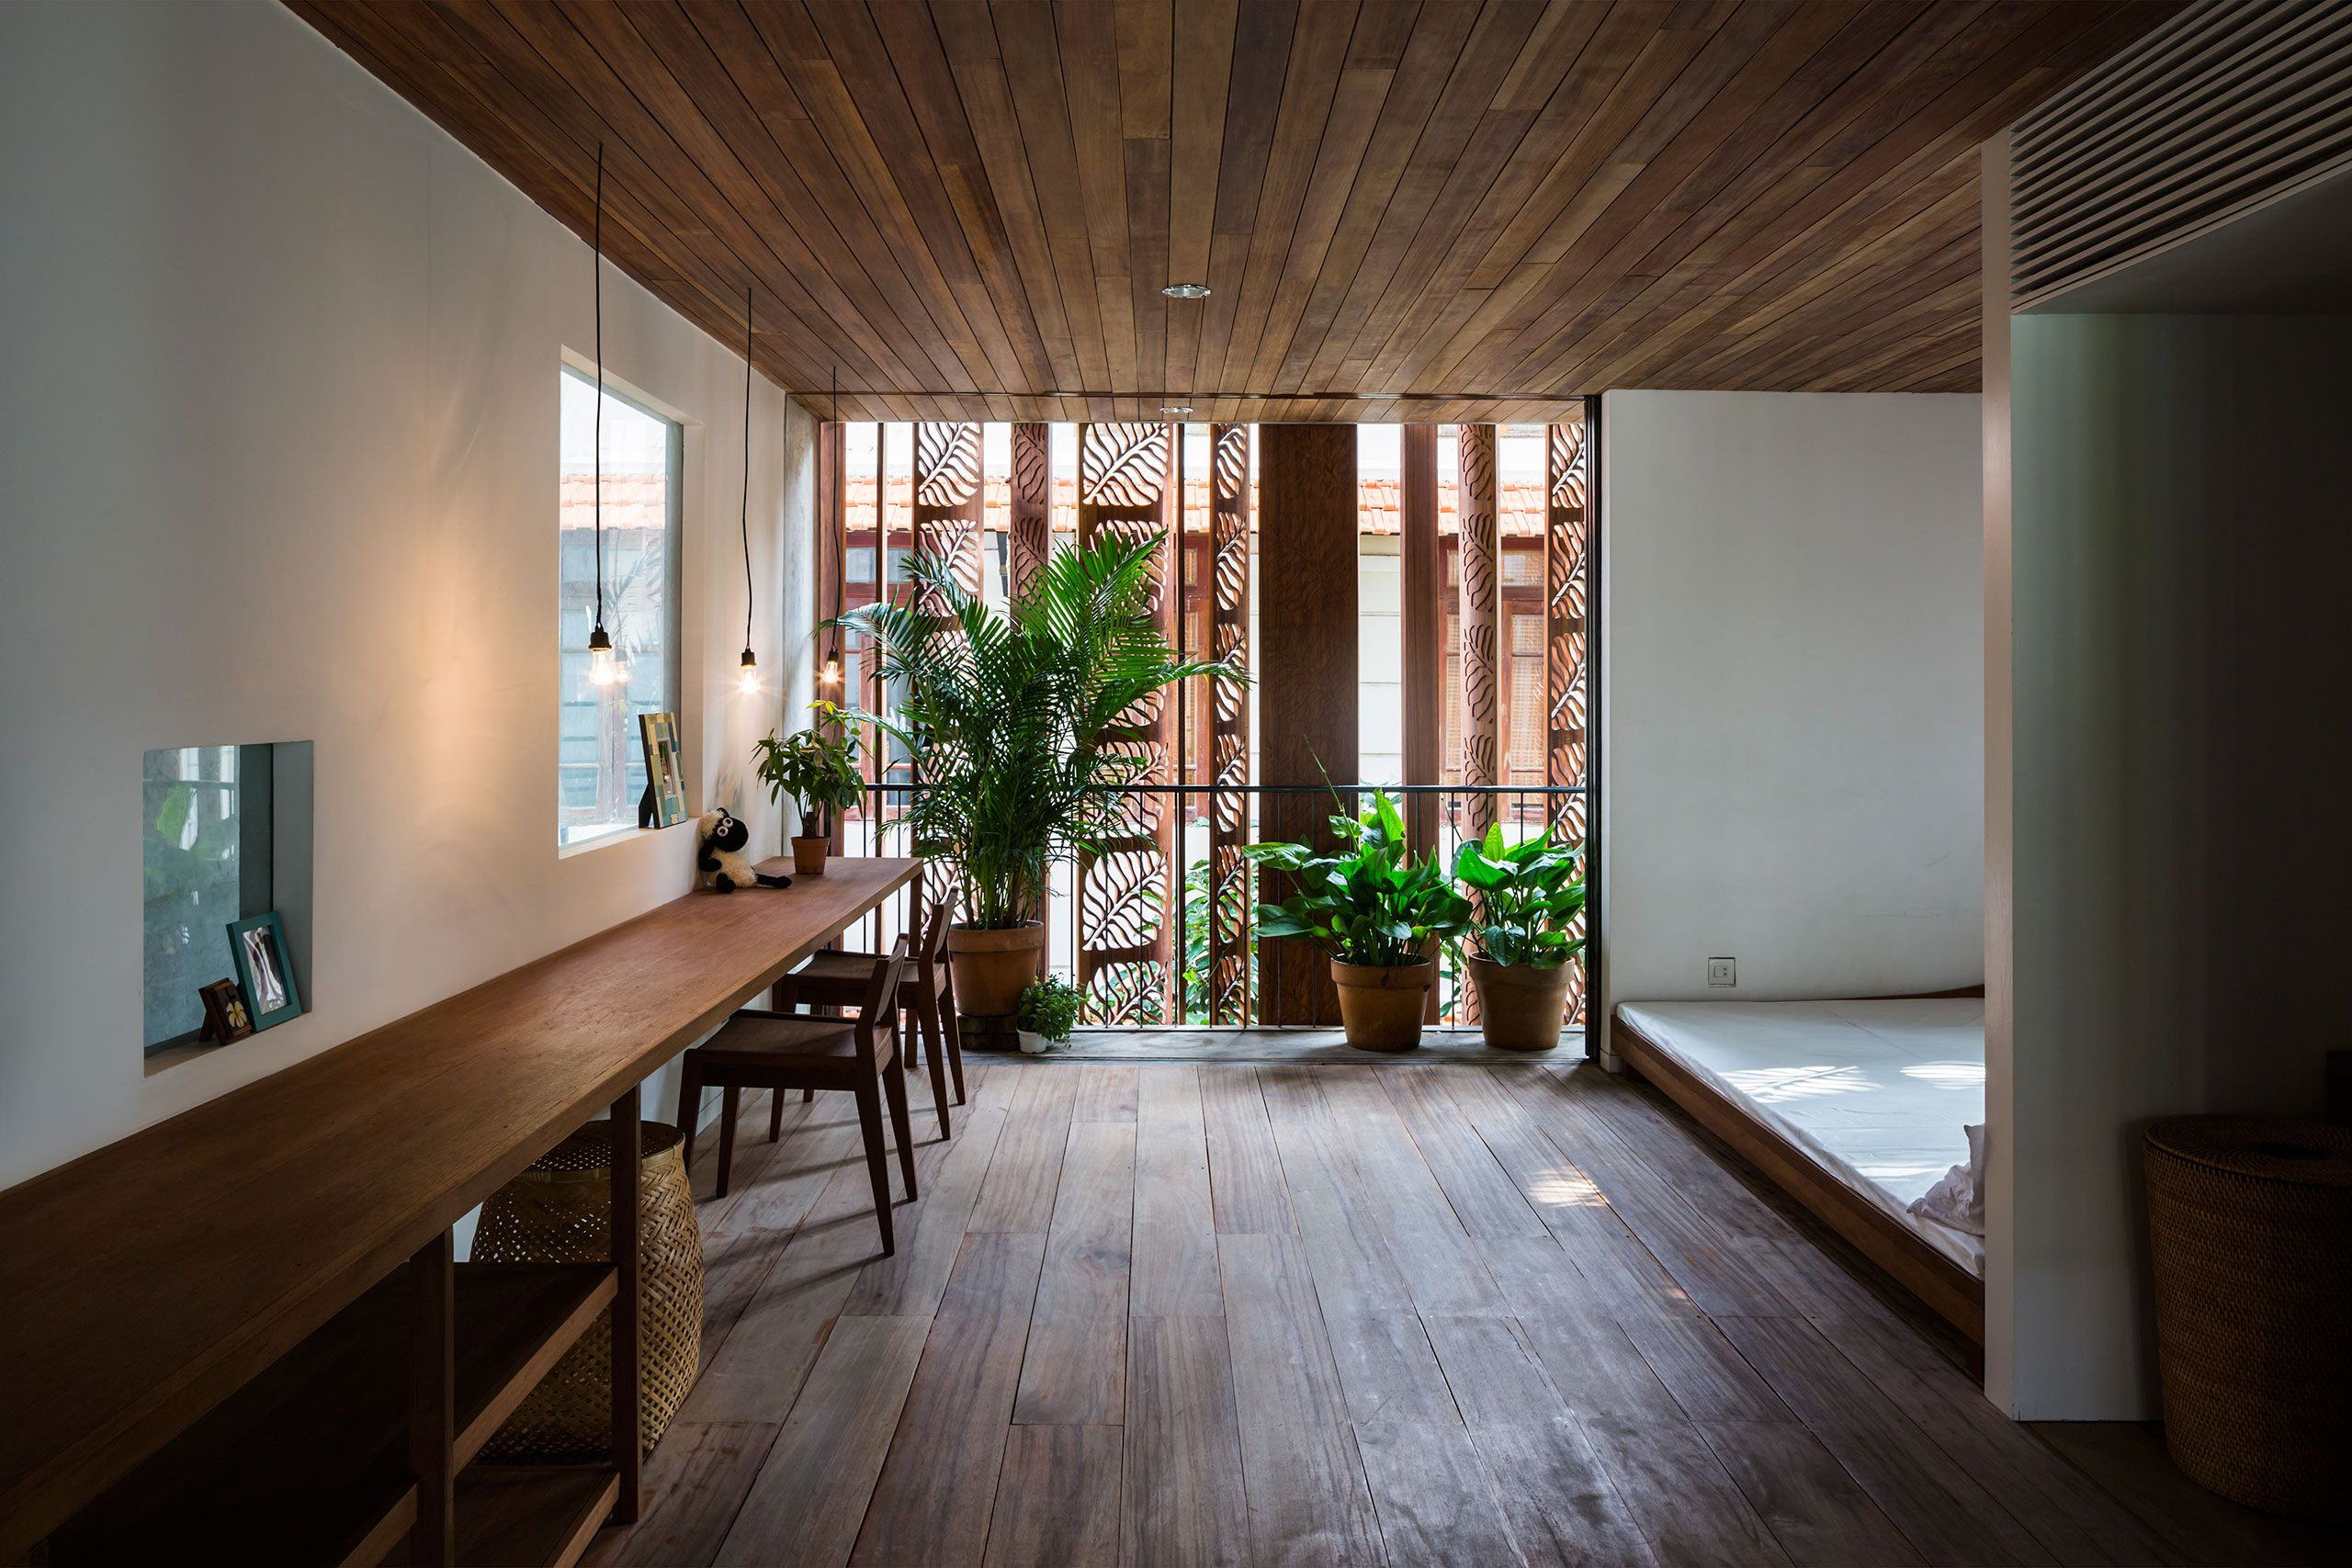 Situated in a new residential area of Ho Chi Minh City in Vietnam, this multi-storied family residence is a reinterpretation of the local architectural vernacular, both in terms of composition and use of materials.